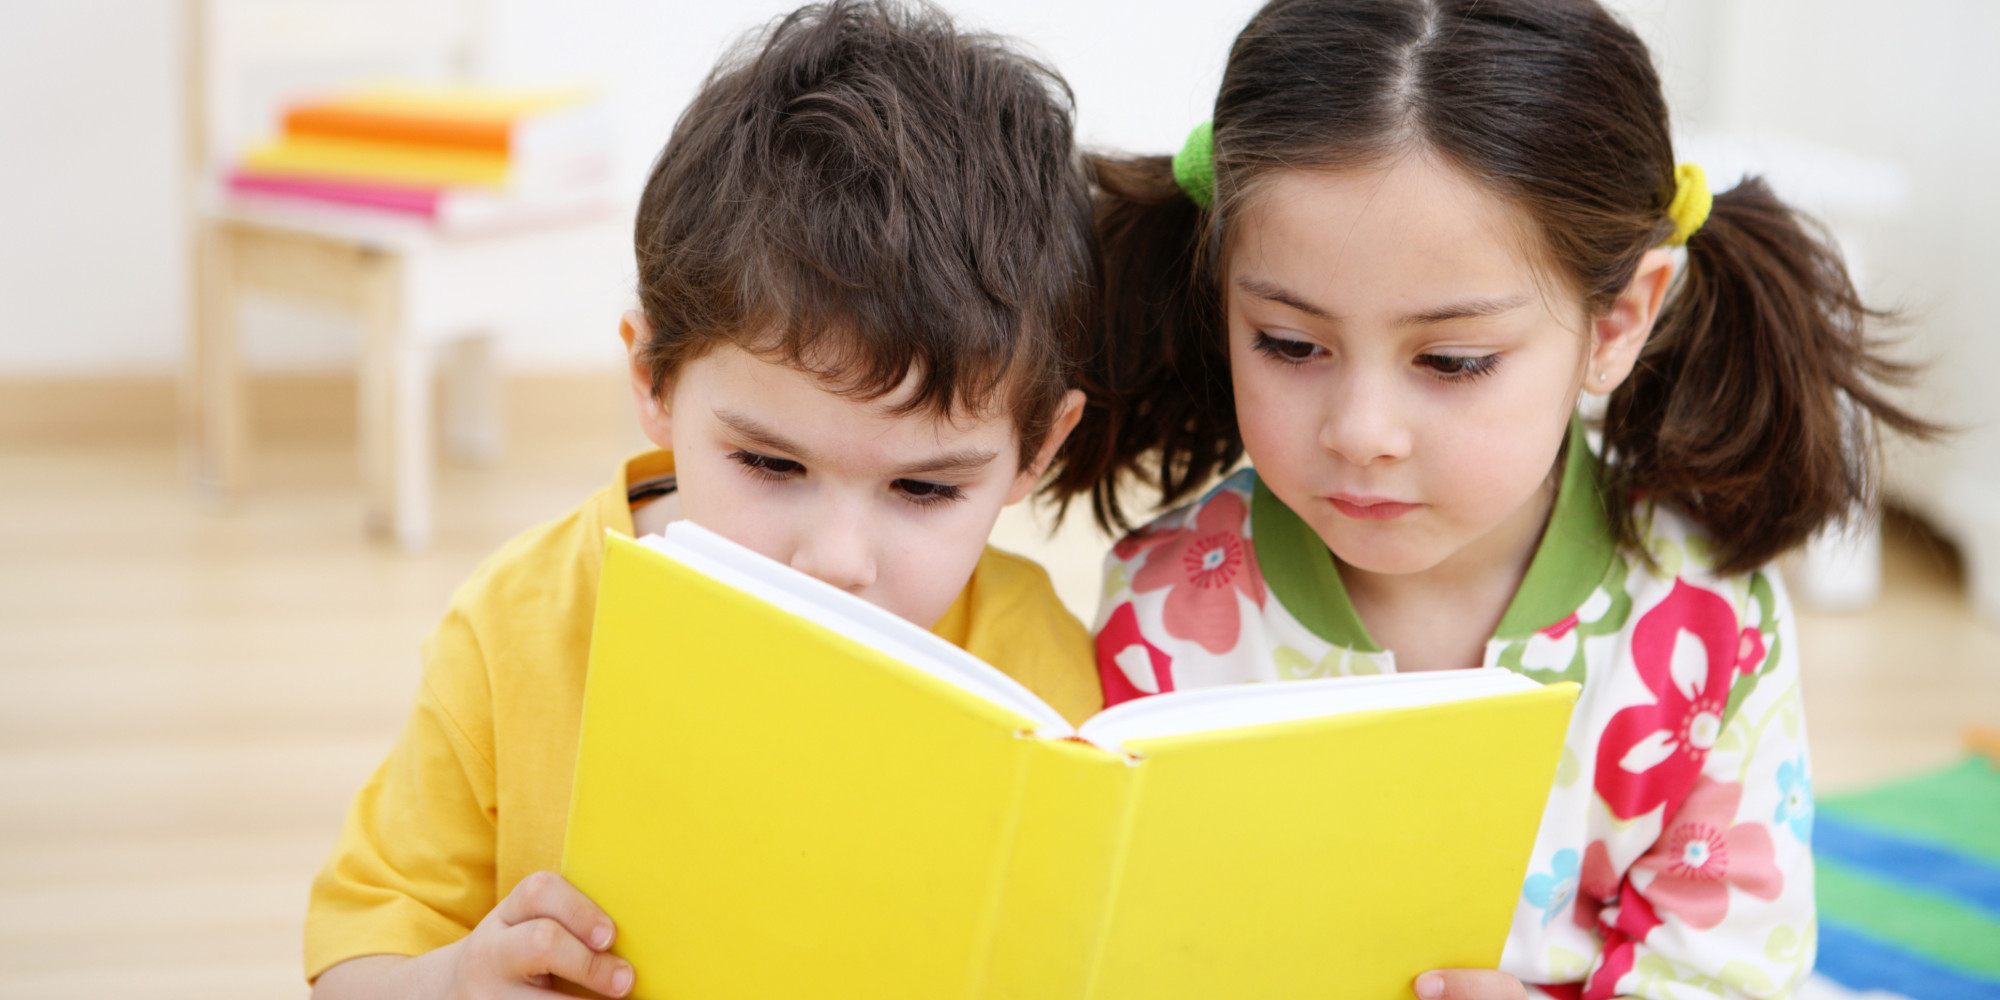 10 Children's Books About Giving